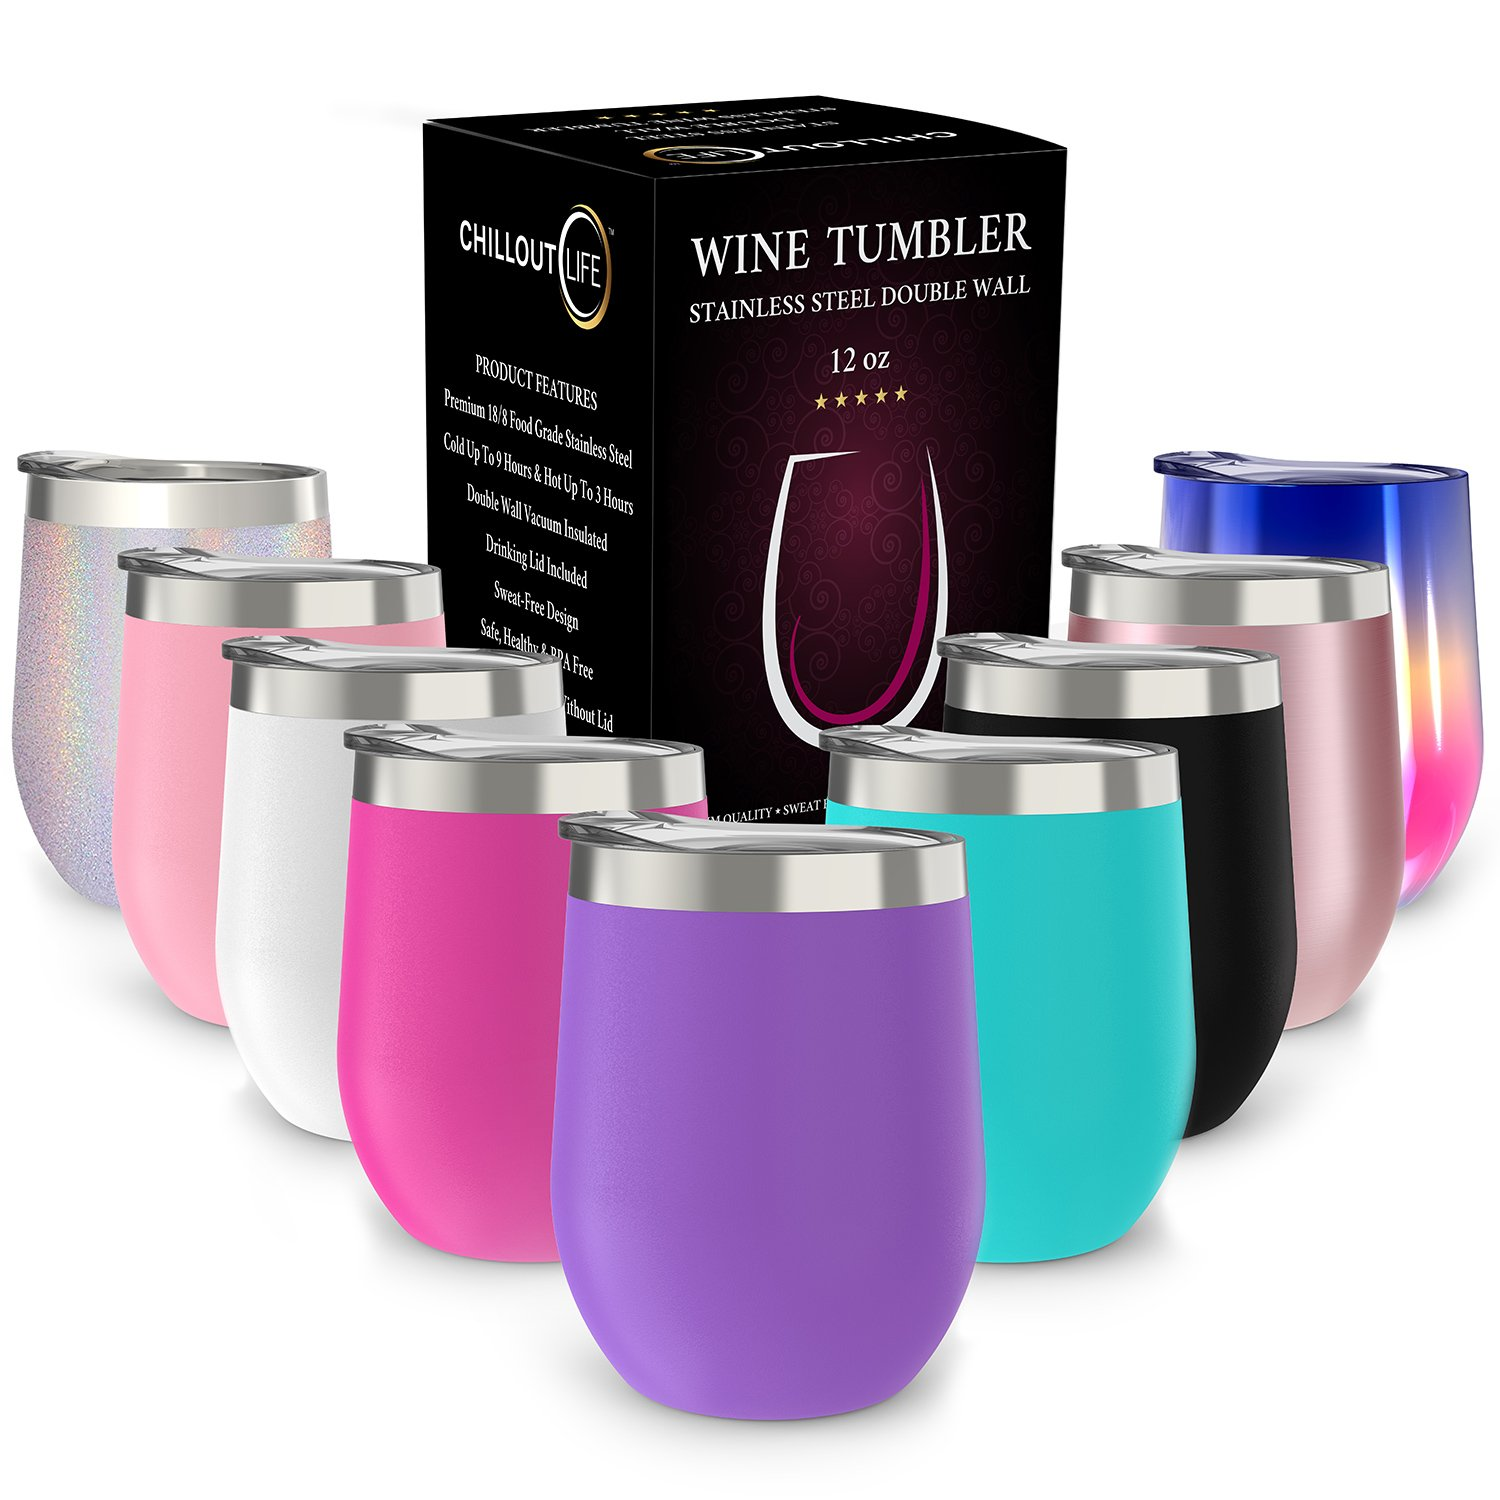 Stainless Steel Stemless Wine Glass Tumbler with Lid, 12 oz | Double Wall Vacuum Insulated Travel Tumbler Cup for Coffee, Wine, Cocktails, Ice Cream | Sweat Free, Unbreakable, BPA Free, Powder Coated CHILLOUT LIFE